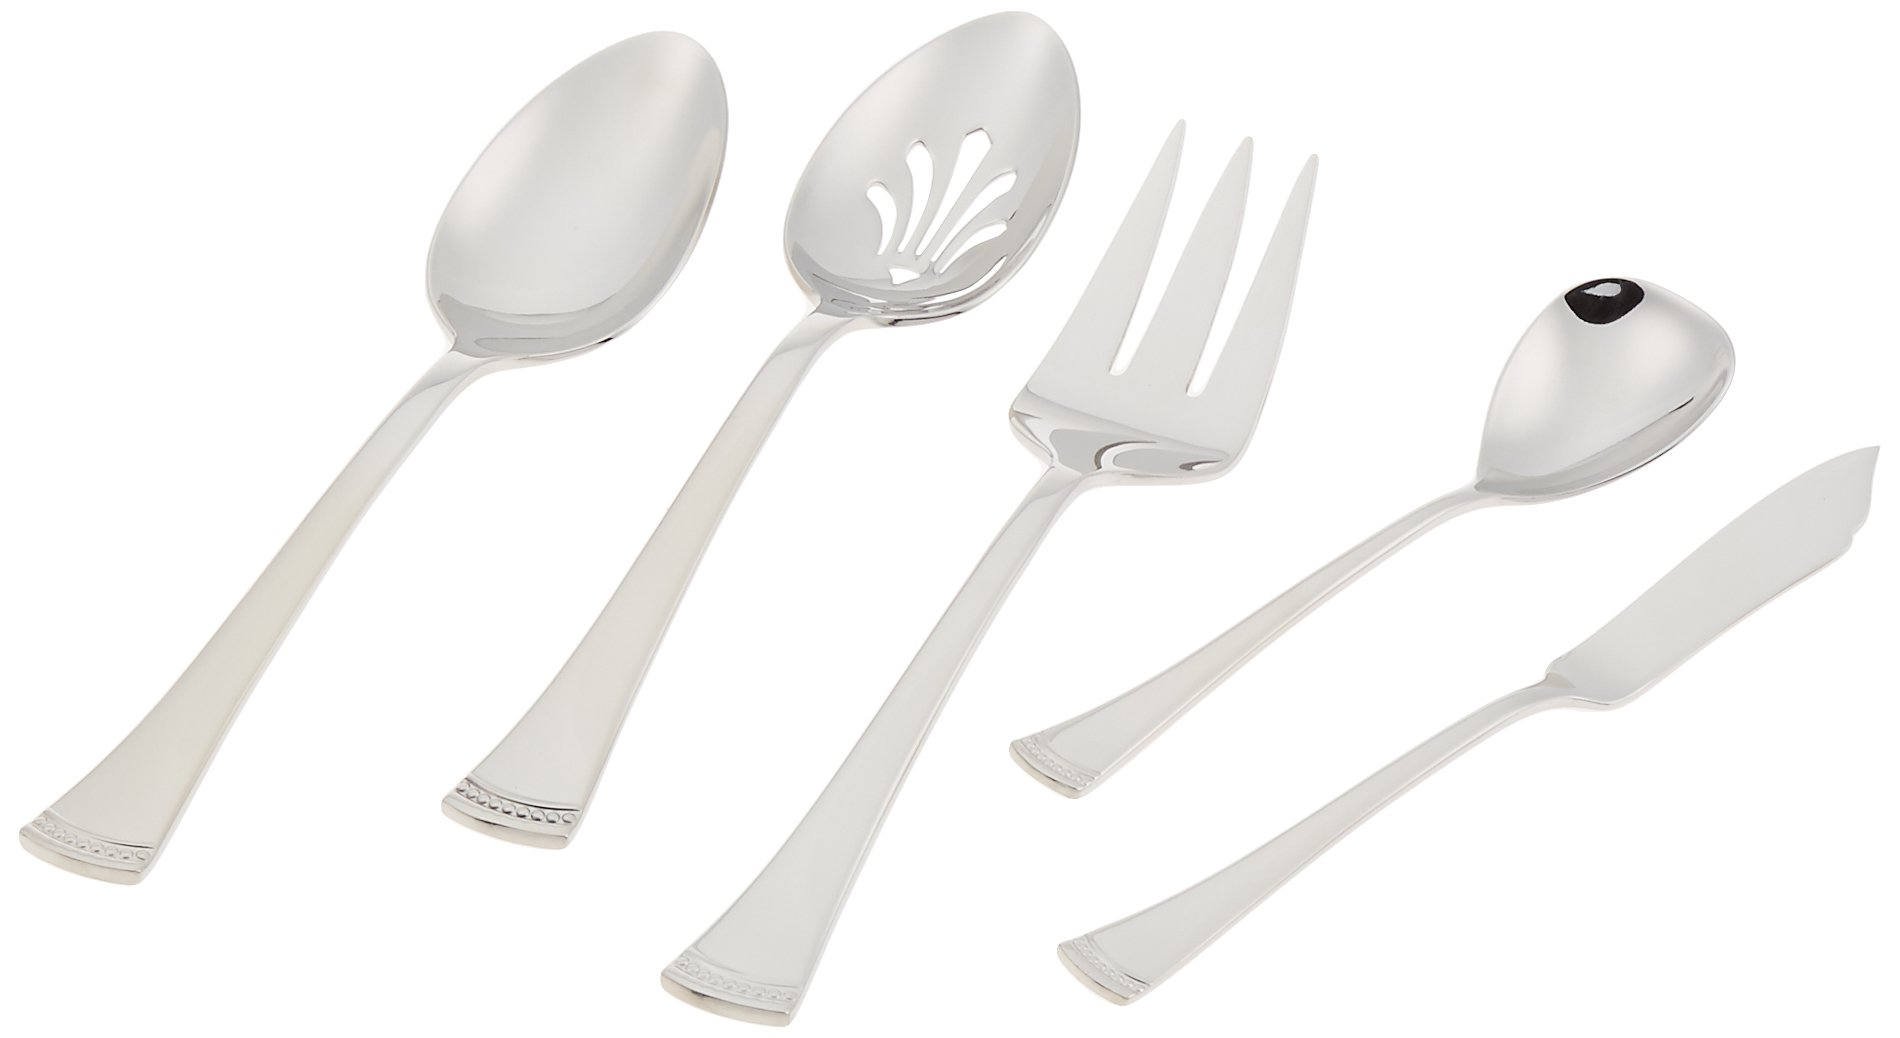 Portola 65-piece Stainless Flatware Set by Lenox by Lenox (Image #4)